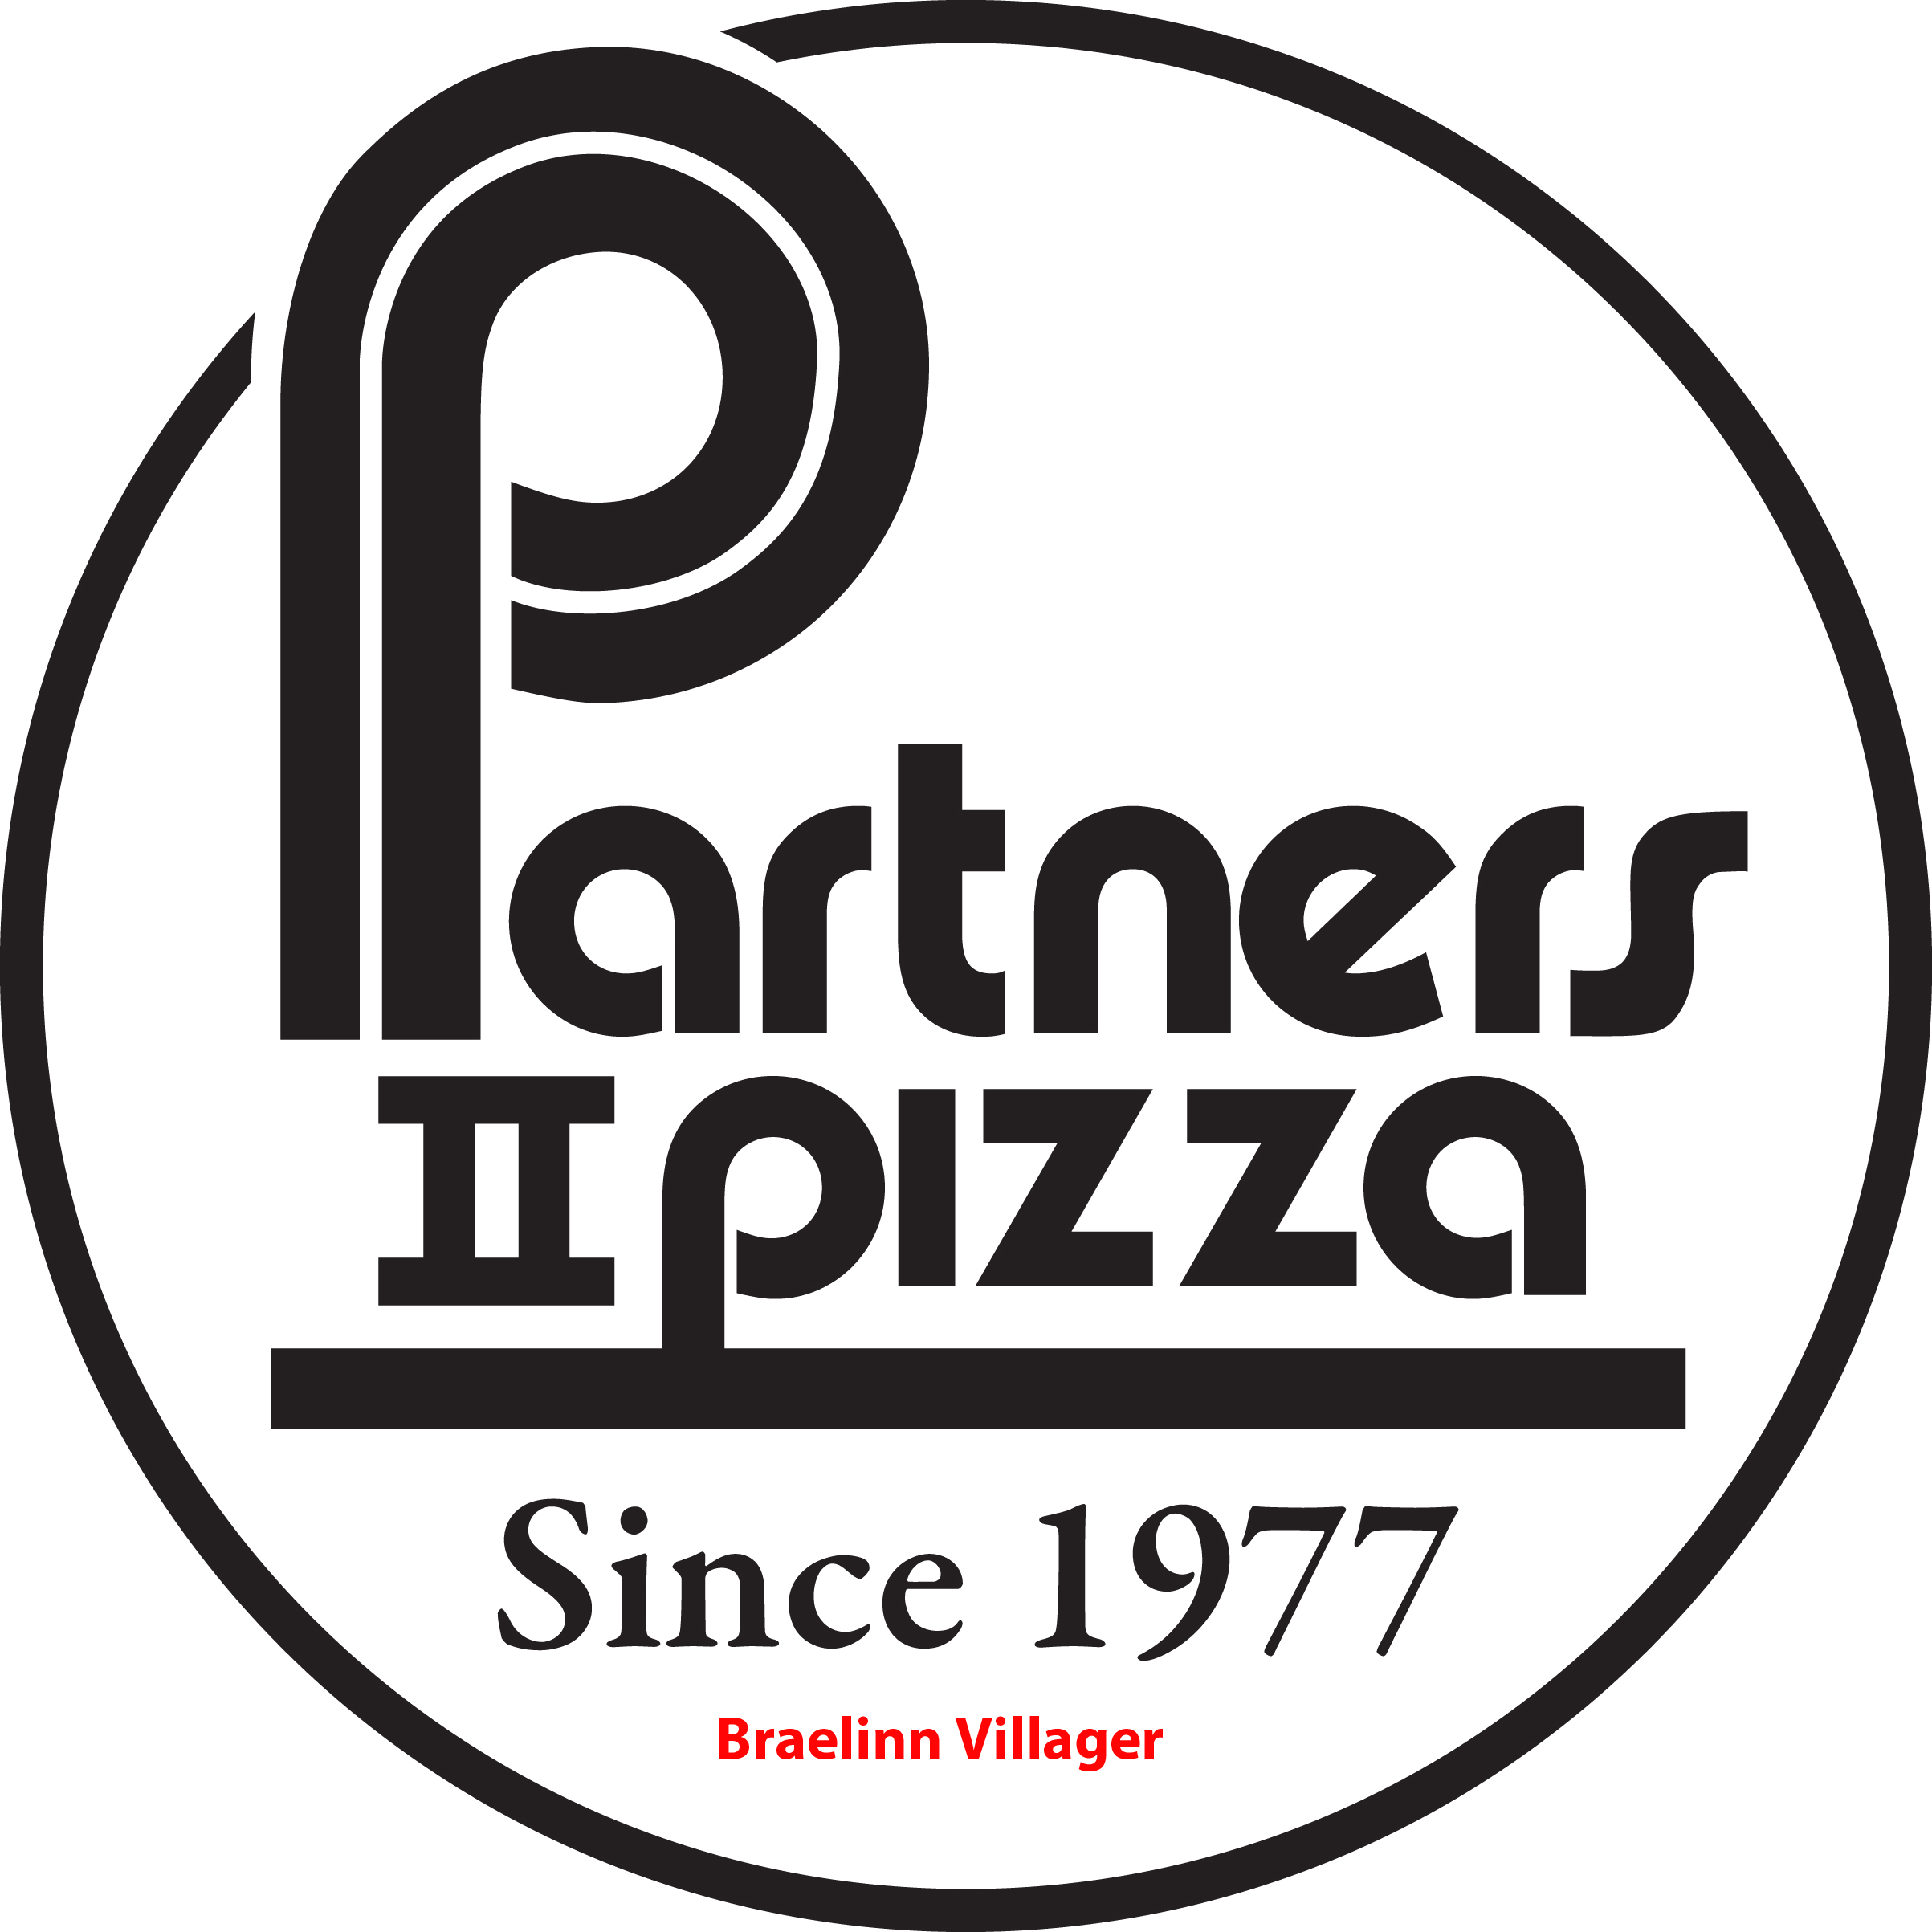 Braelinn Villager - Partners II Pizza